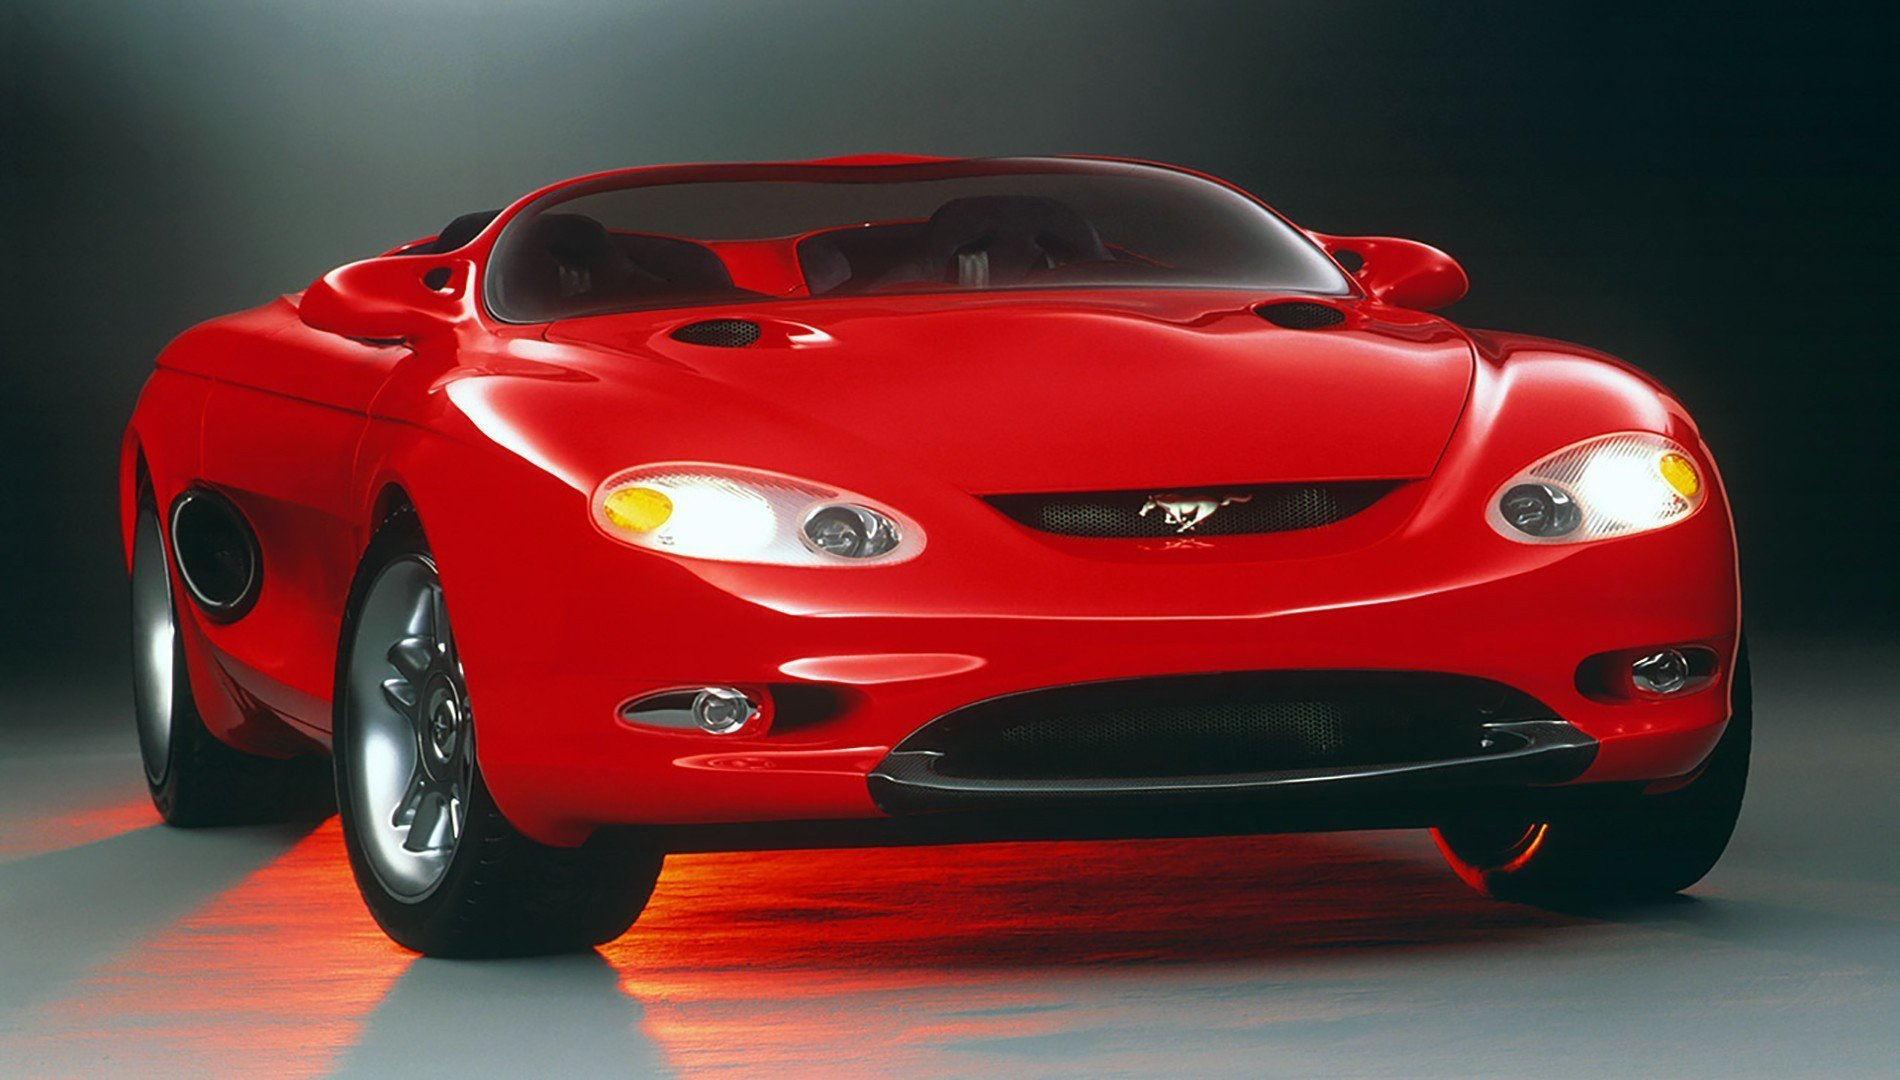 Latest Car Ford Mustang Concept Cars Hd Wallpapers Desktop Free Download